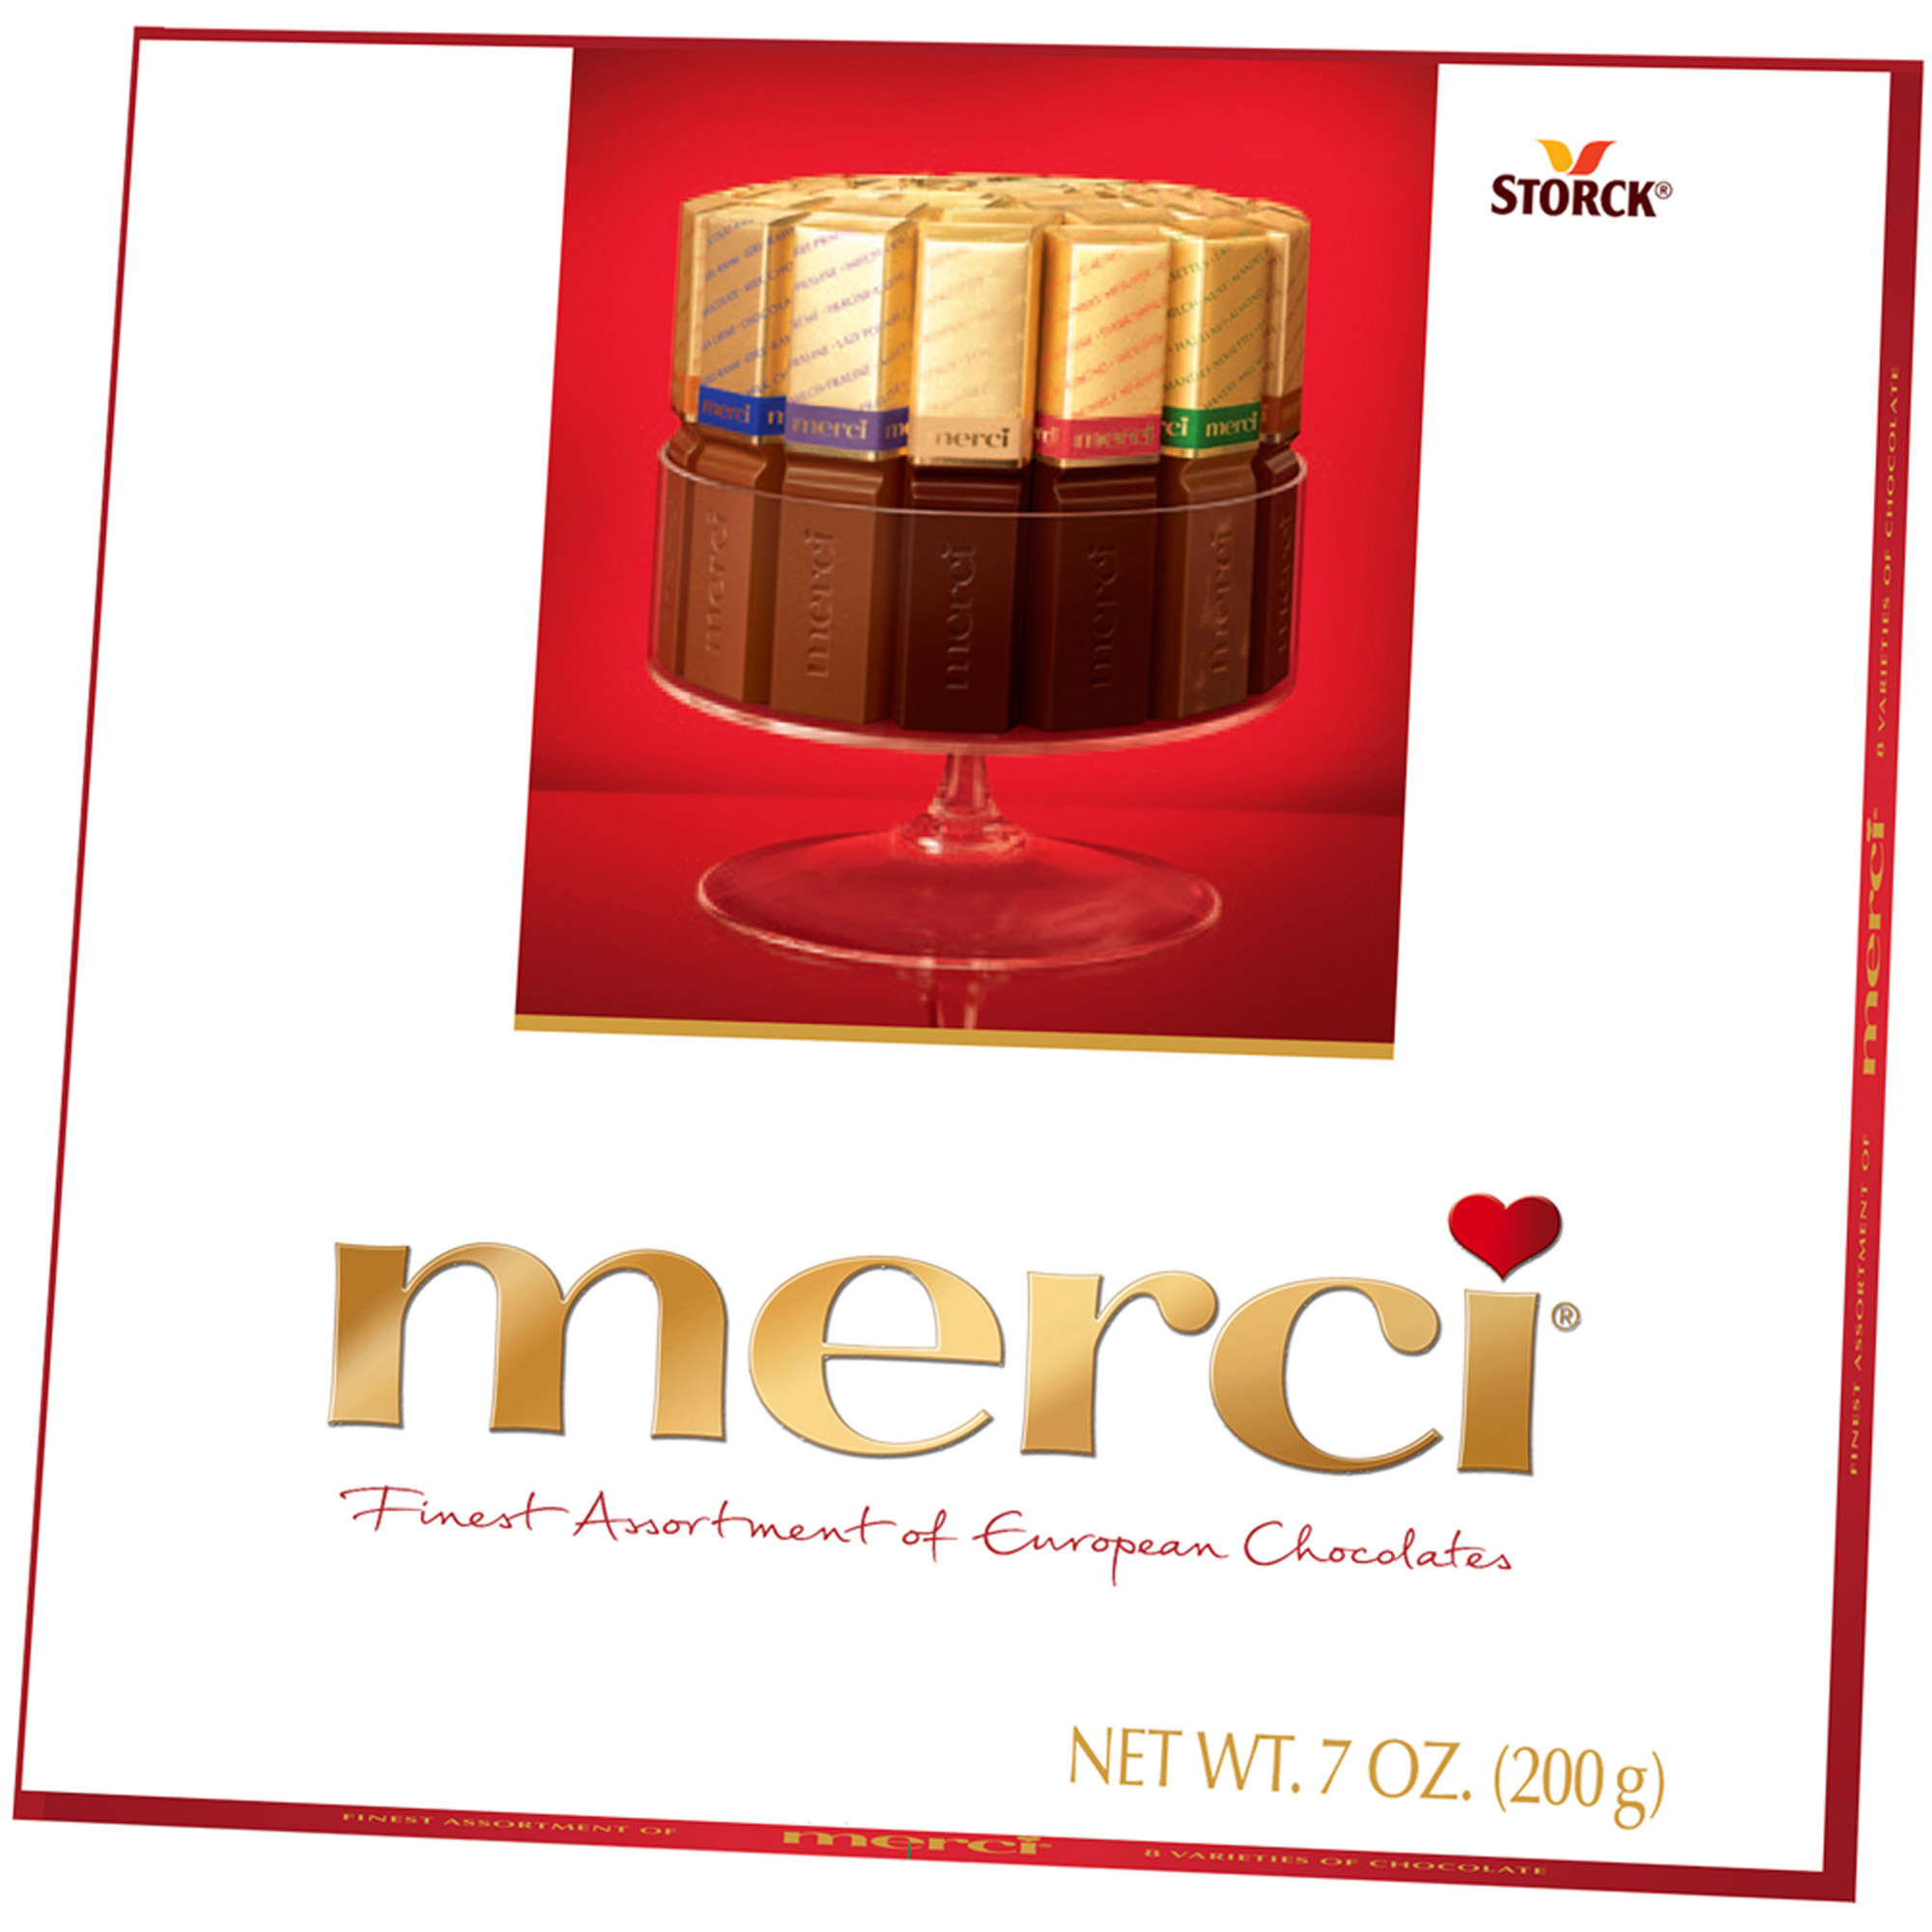 Merci Finest Assortment of European Chocolates, 7 oz